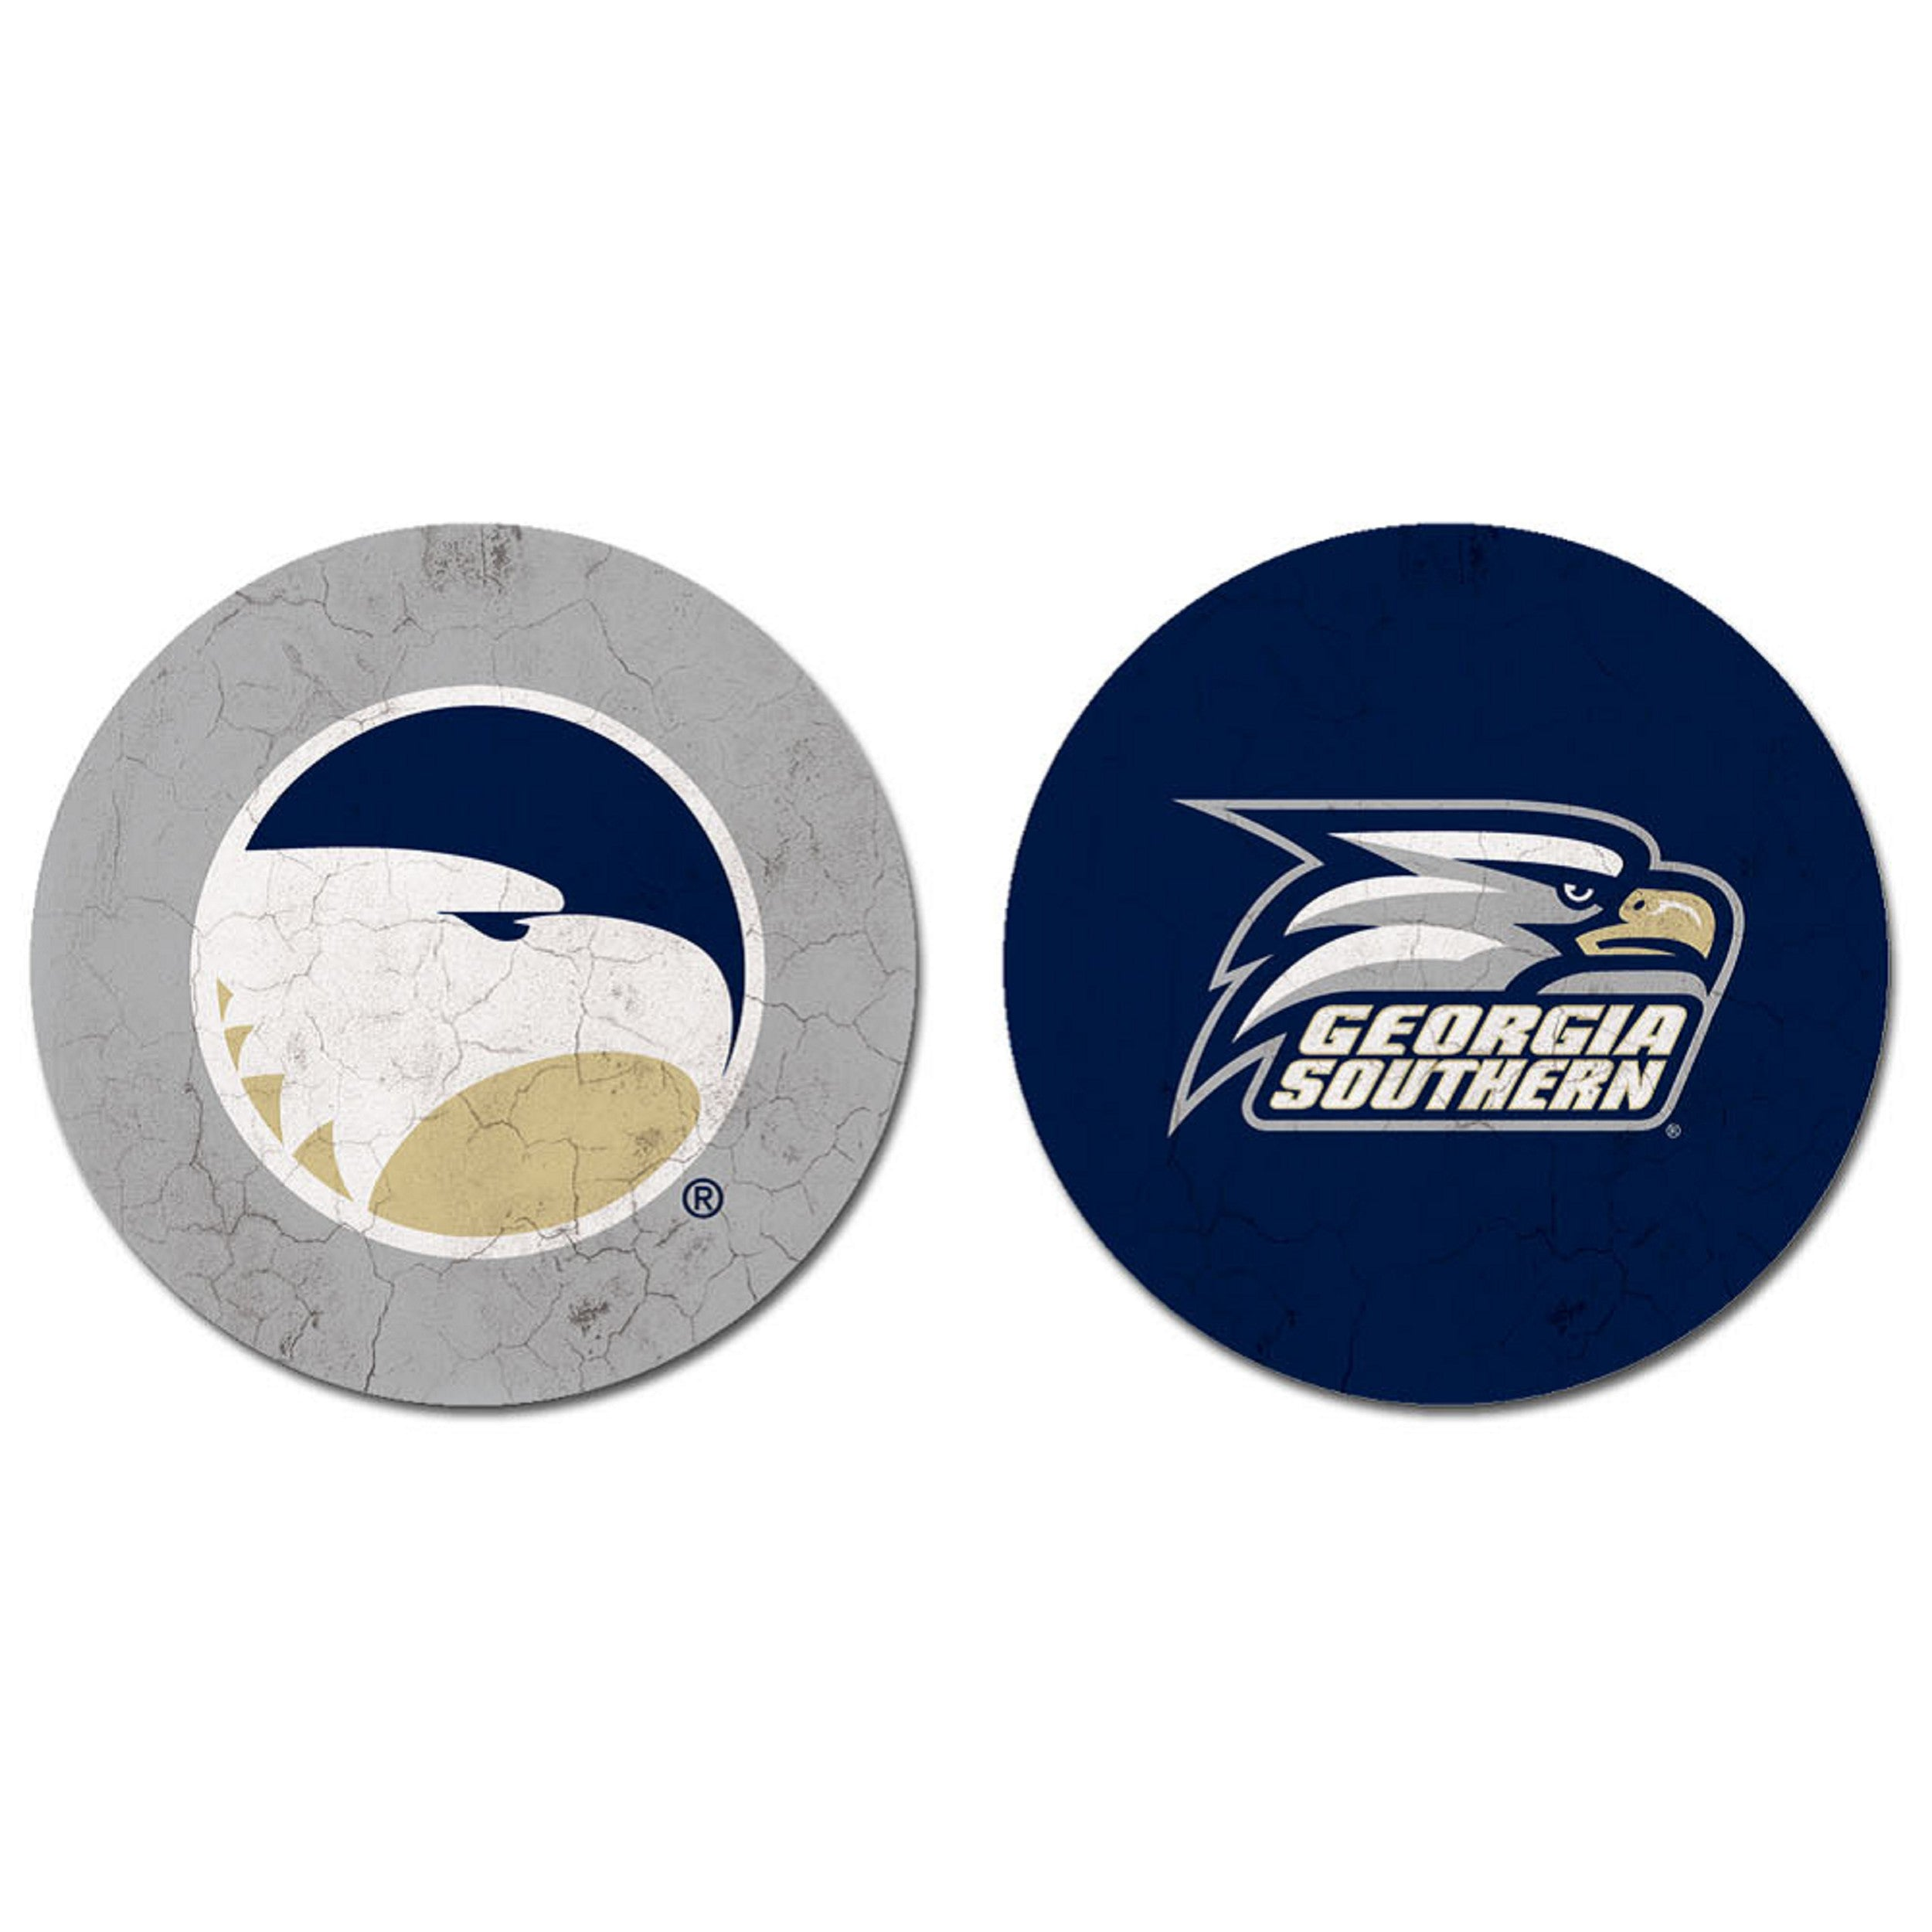 Thirsty Car Coasters - Academic/Athletic Eagle